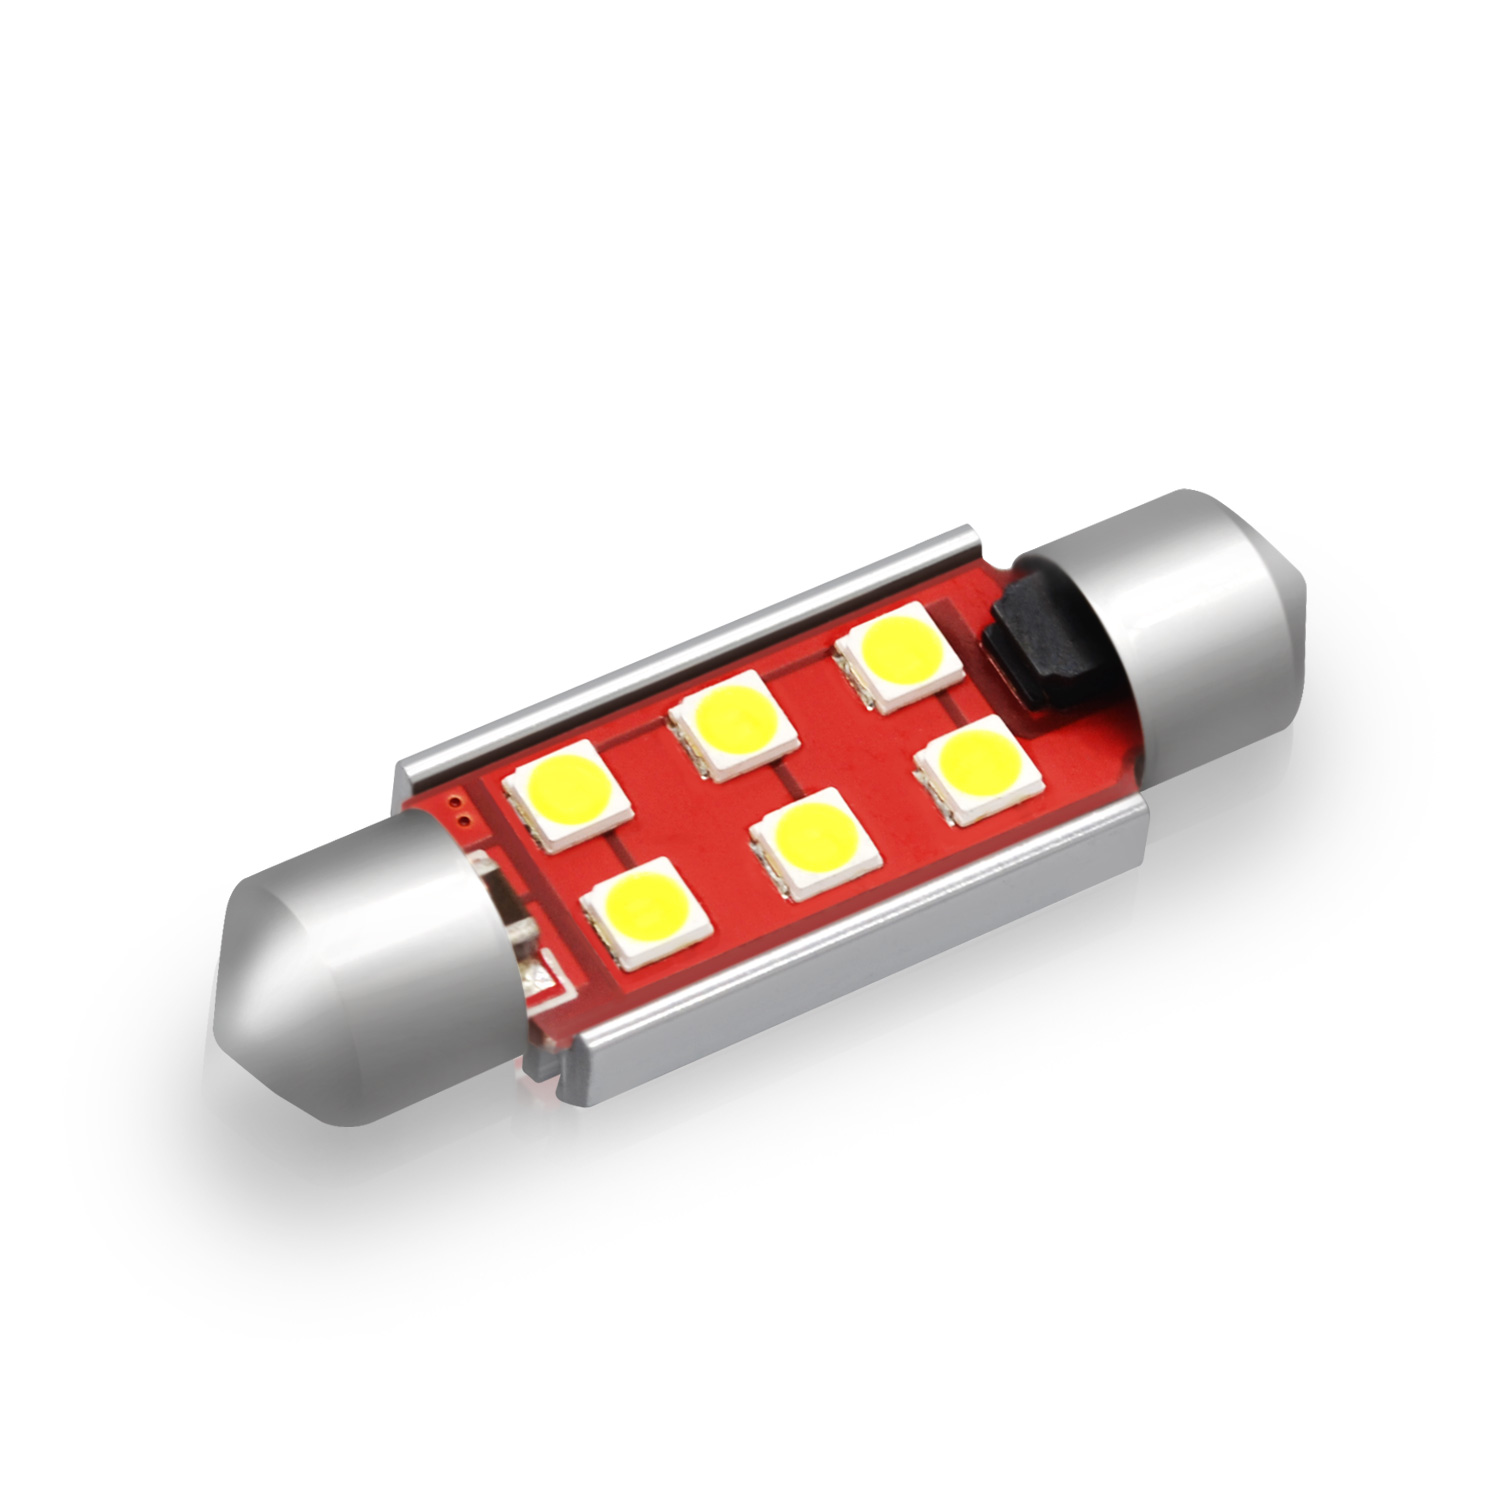 Automotive LED Map Light Bulb for cars, trucks, motorcycles